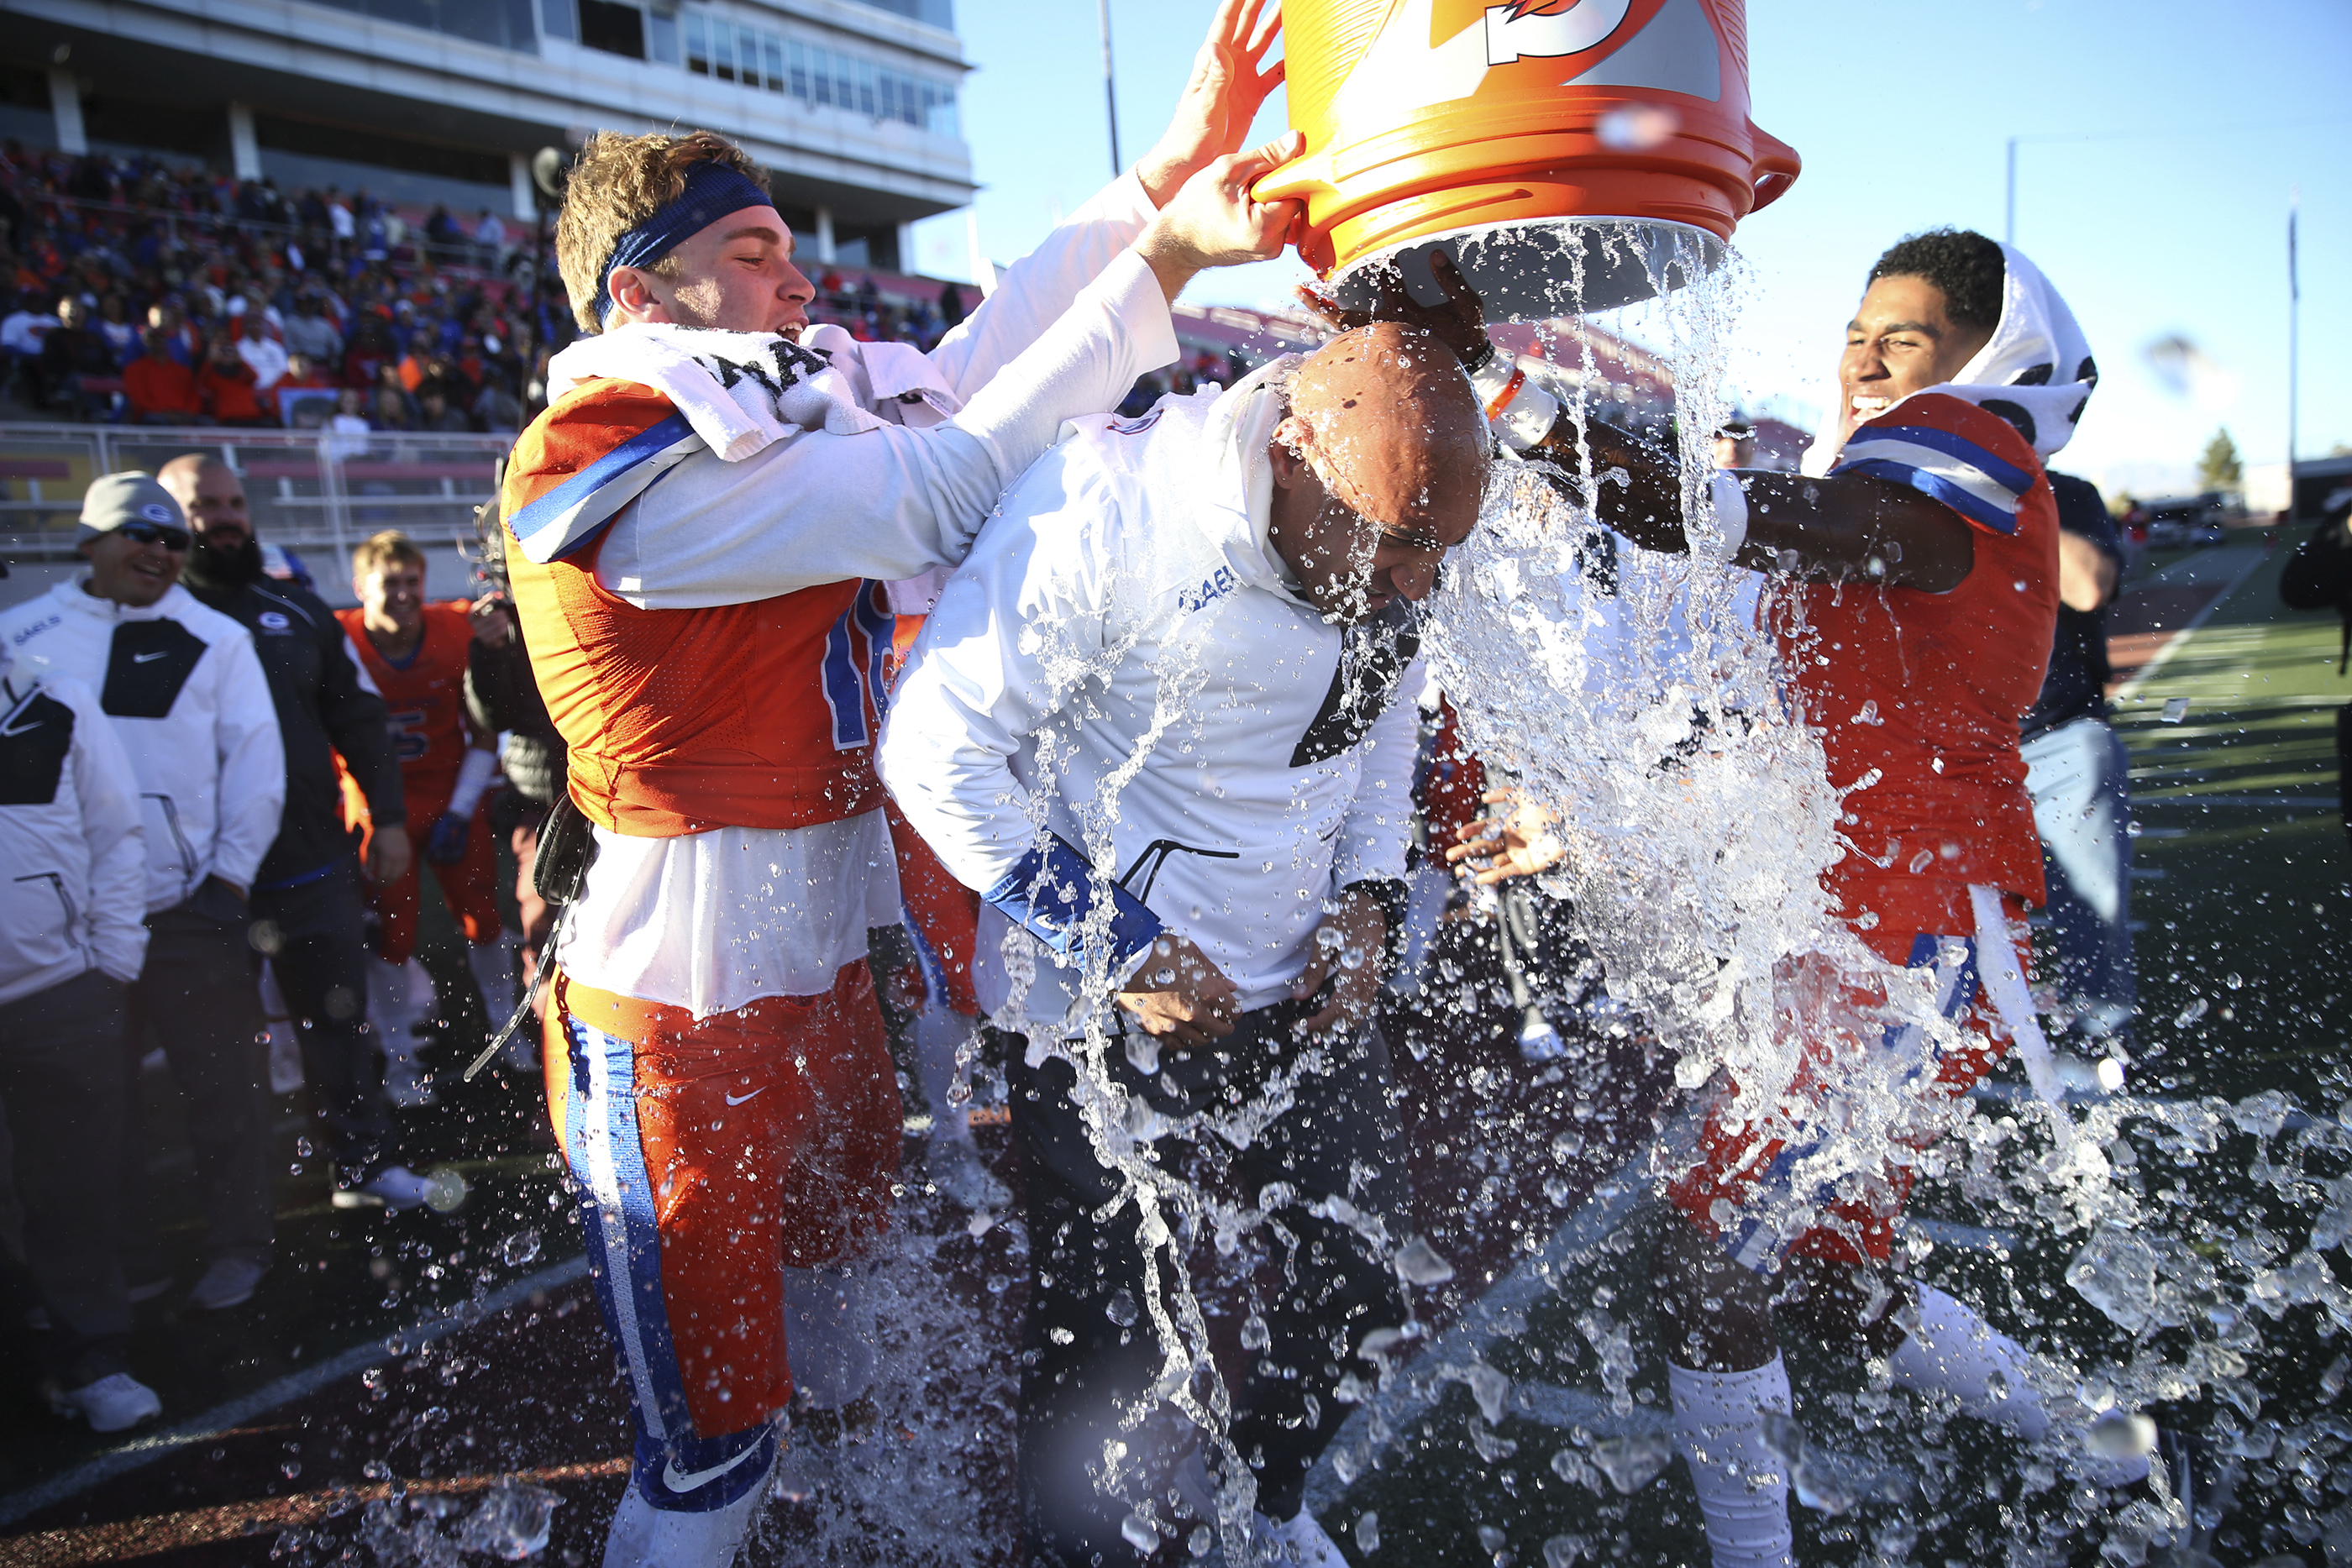 Bishop Gorman coach Kenny Sanchez, center, is doused by players Tate Martell, left, and Alex Perry (4) at the end of the Class 4A state football championship game against Liberty on Saturday, Dec. 3, 2016, in Las Vegas. (Erik Verduzco/Las Vegas Review-Journal via AP) ORG XMIT: NVLAS107